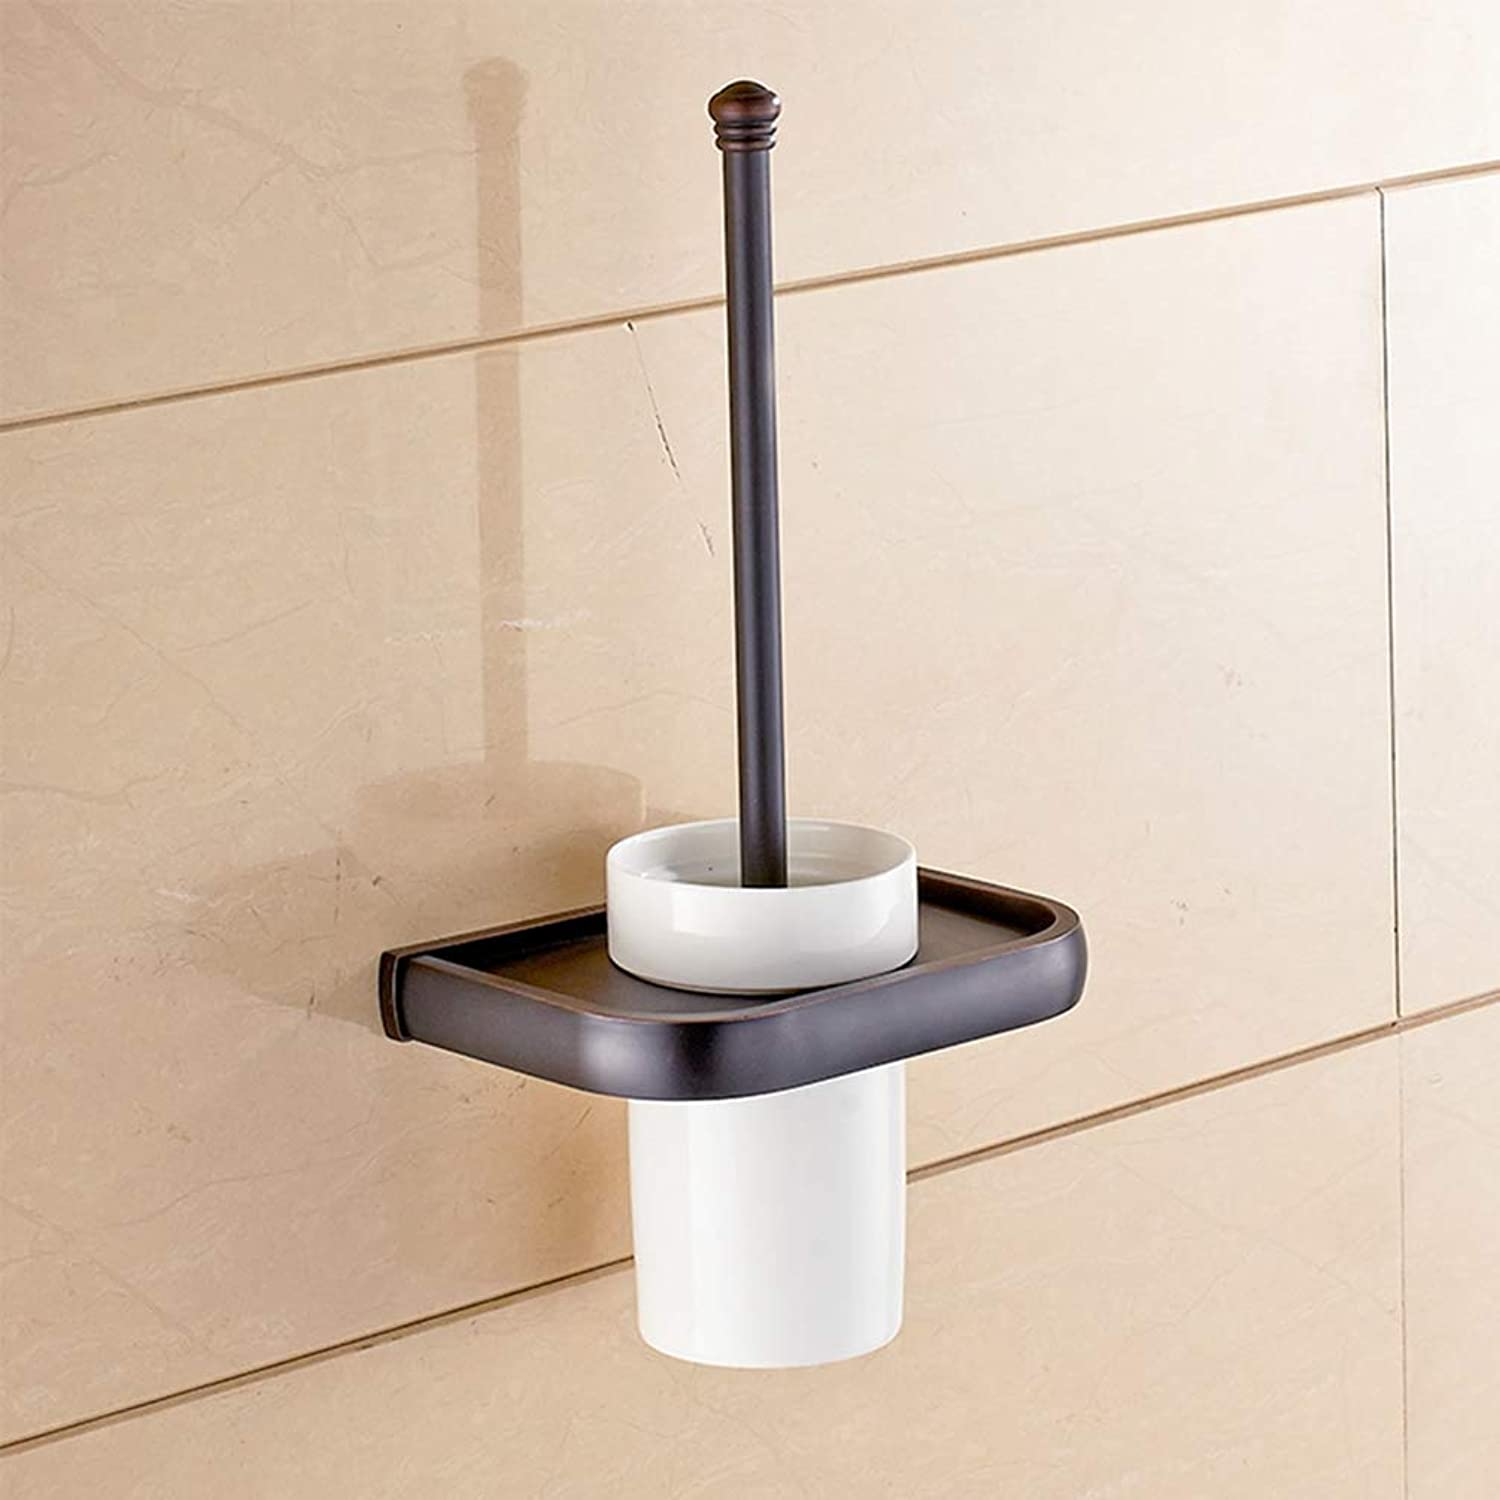 LUDSUY Toilet Brush Holders Classic Wall Mouted Ceramic Cup Brass Brushed Cup Tumbler Holders Bathroom Accessories,BBathroom Accessories